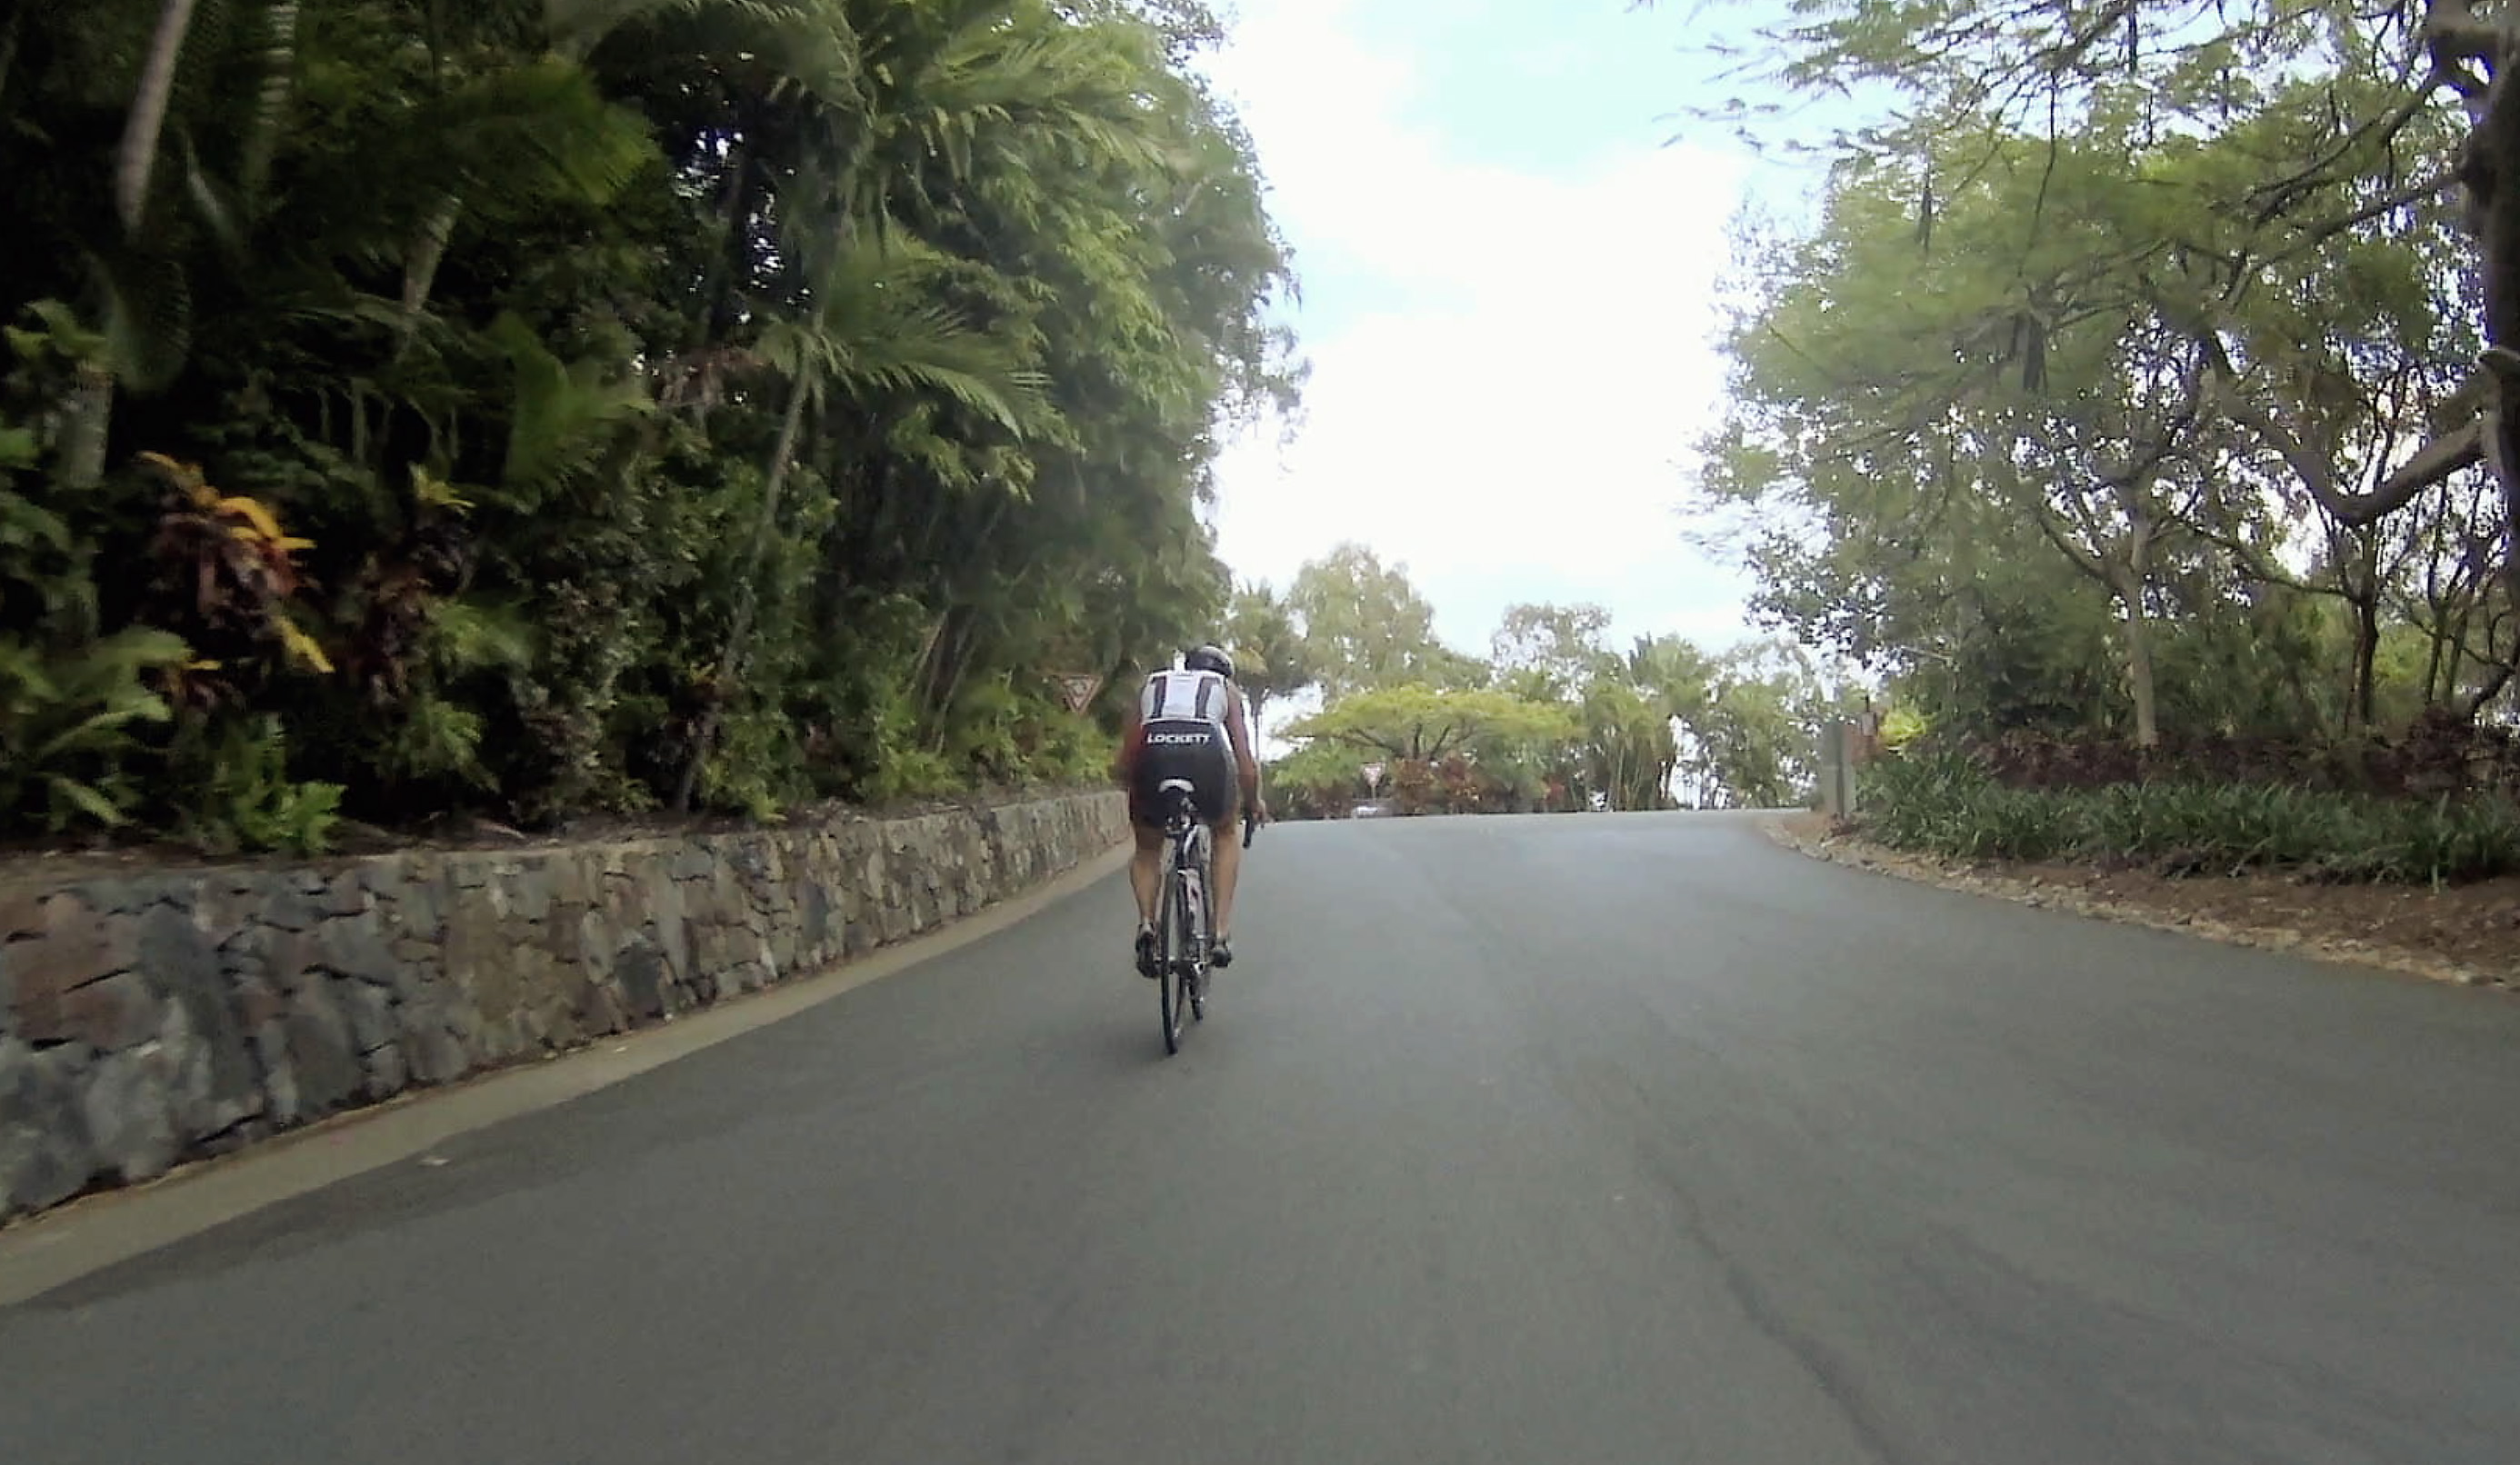 The climbs are short, but they're some of the steepest you'll ever find in a Tri